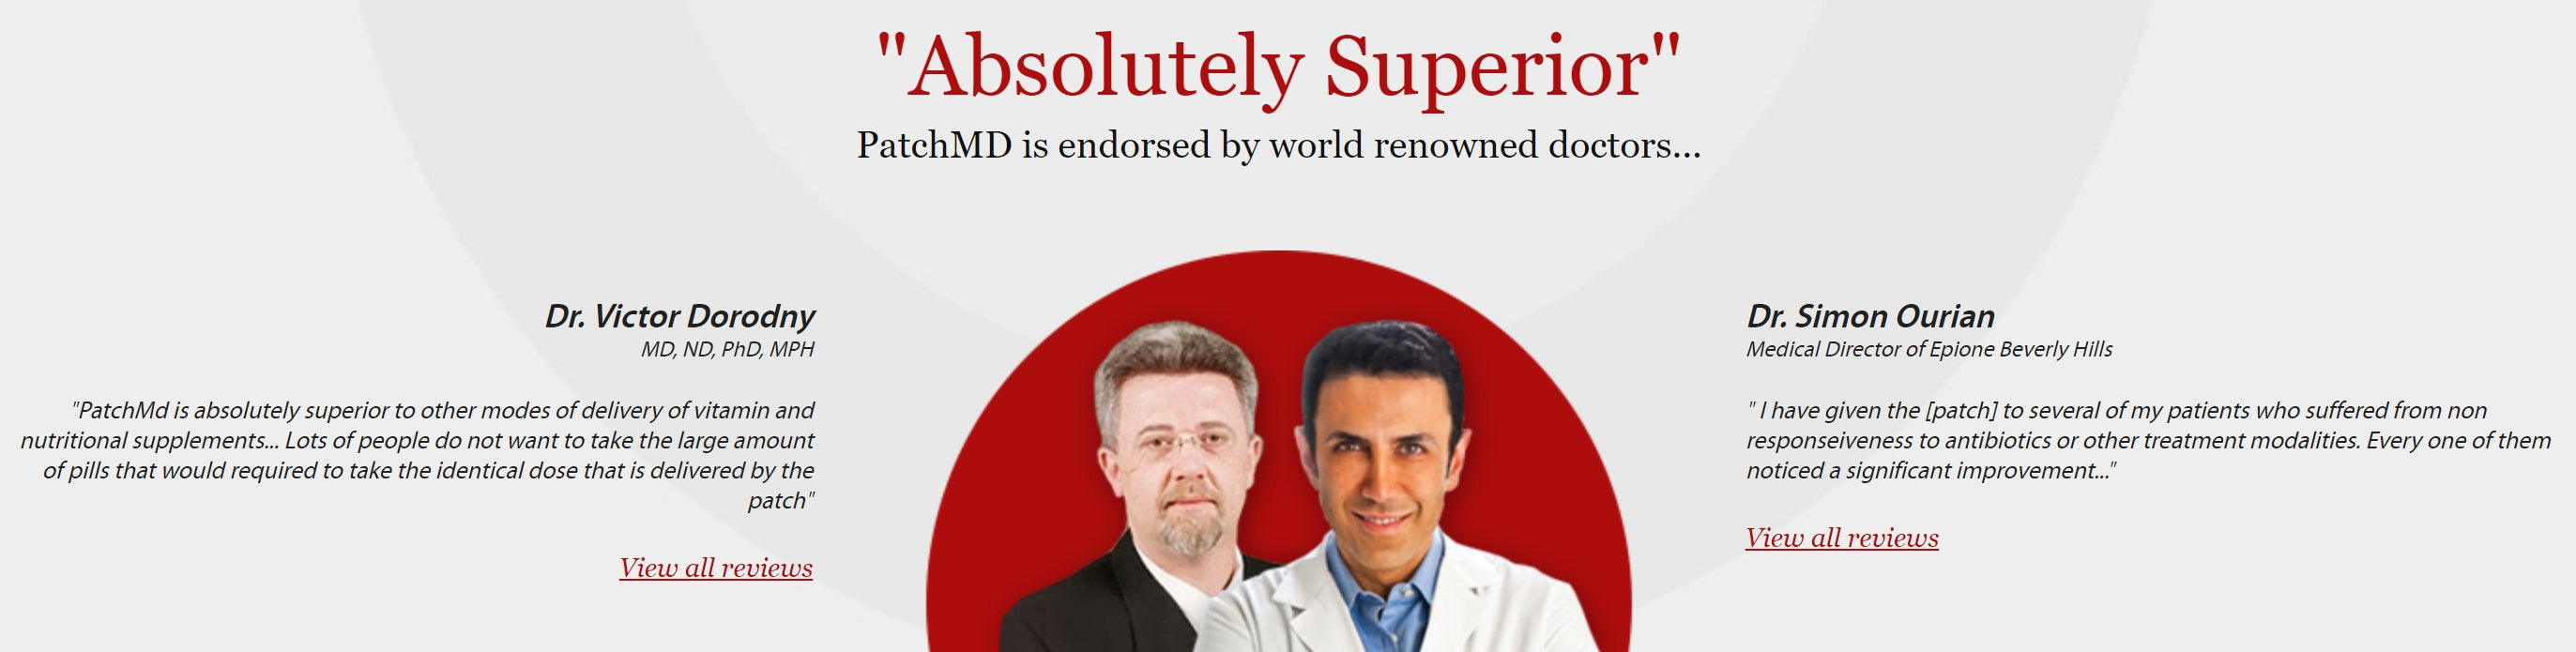 PatchMD is endorsed by world renowned doctors. Absolutely Superior!